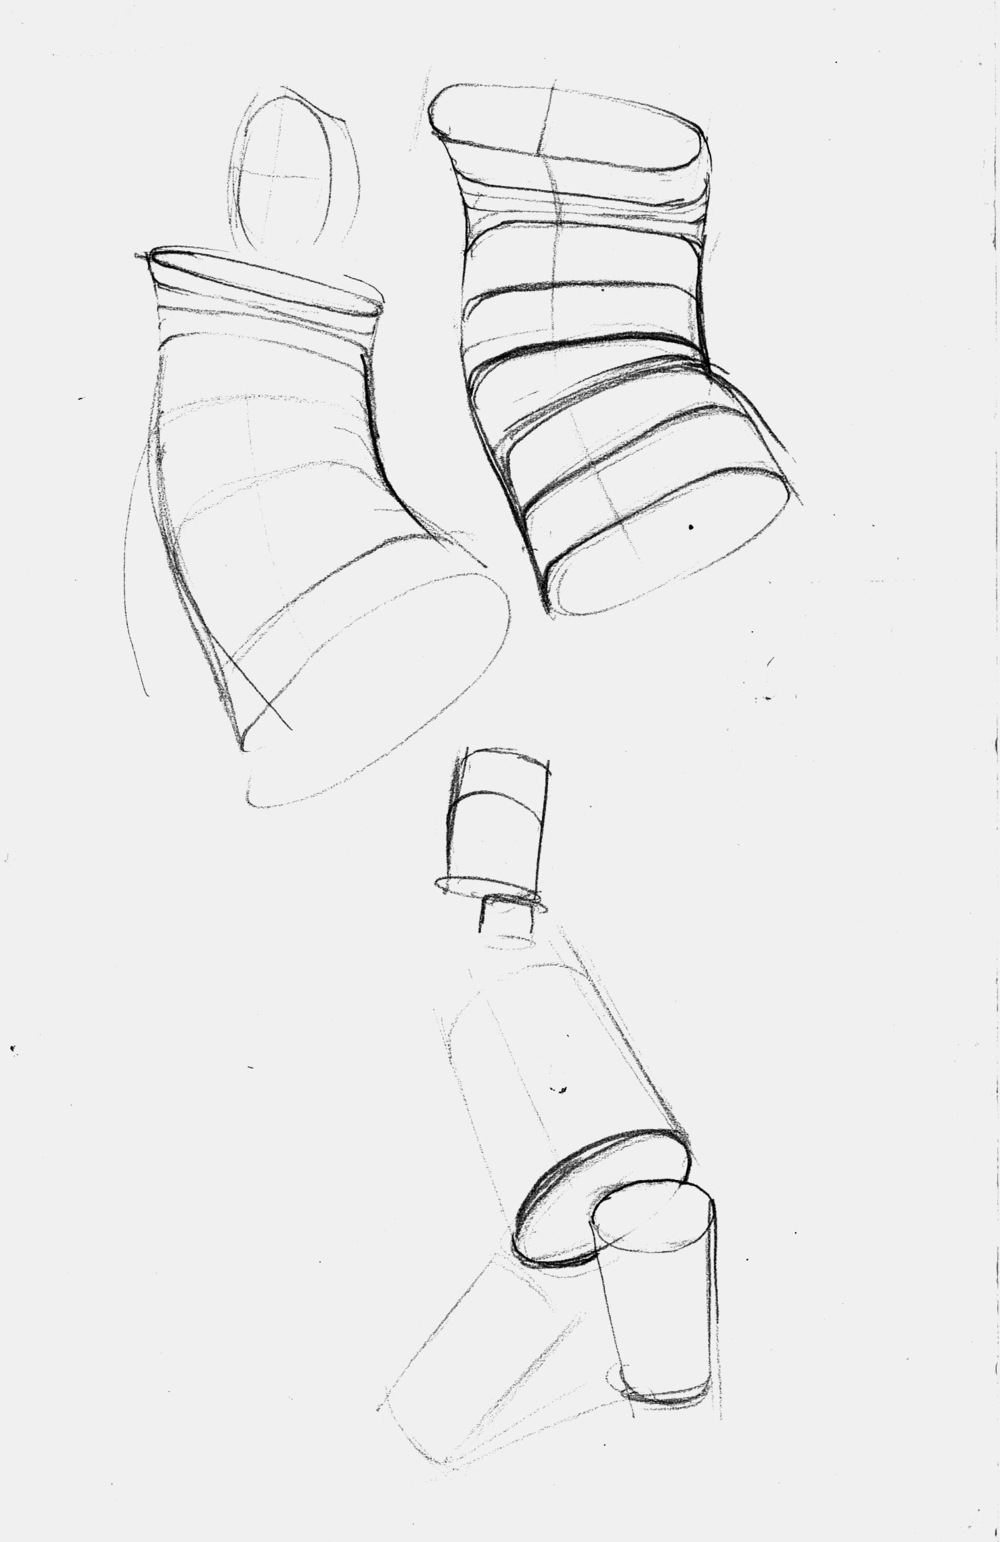 basic form drawing scans 2.jpeg